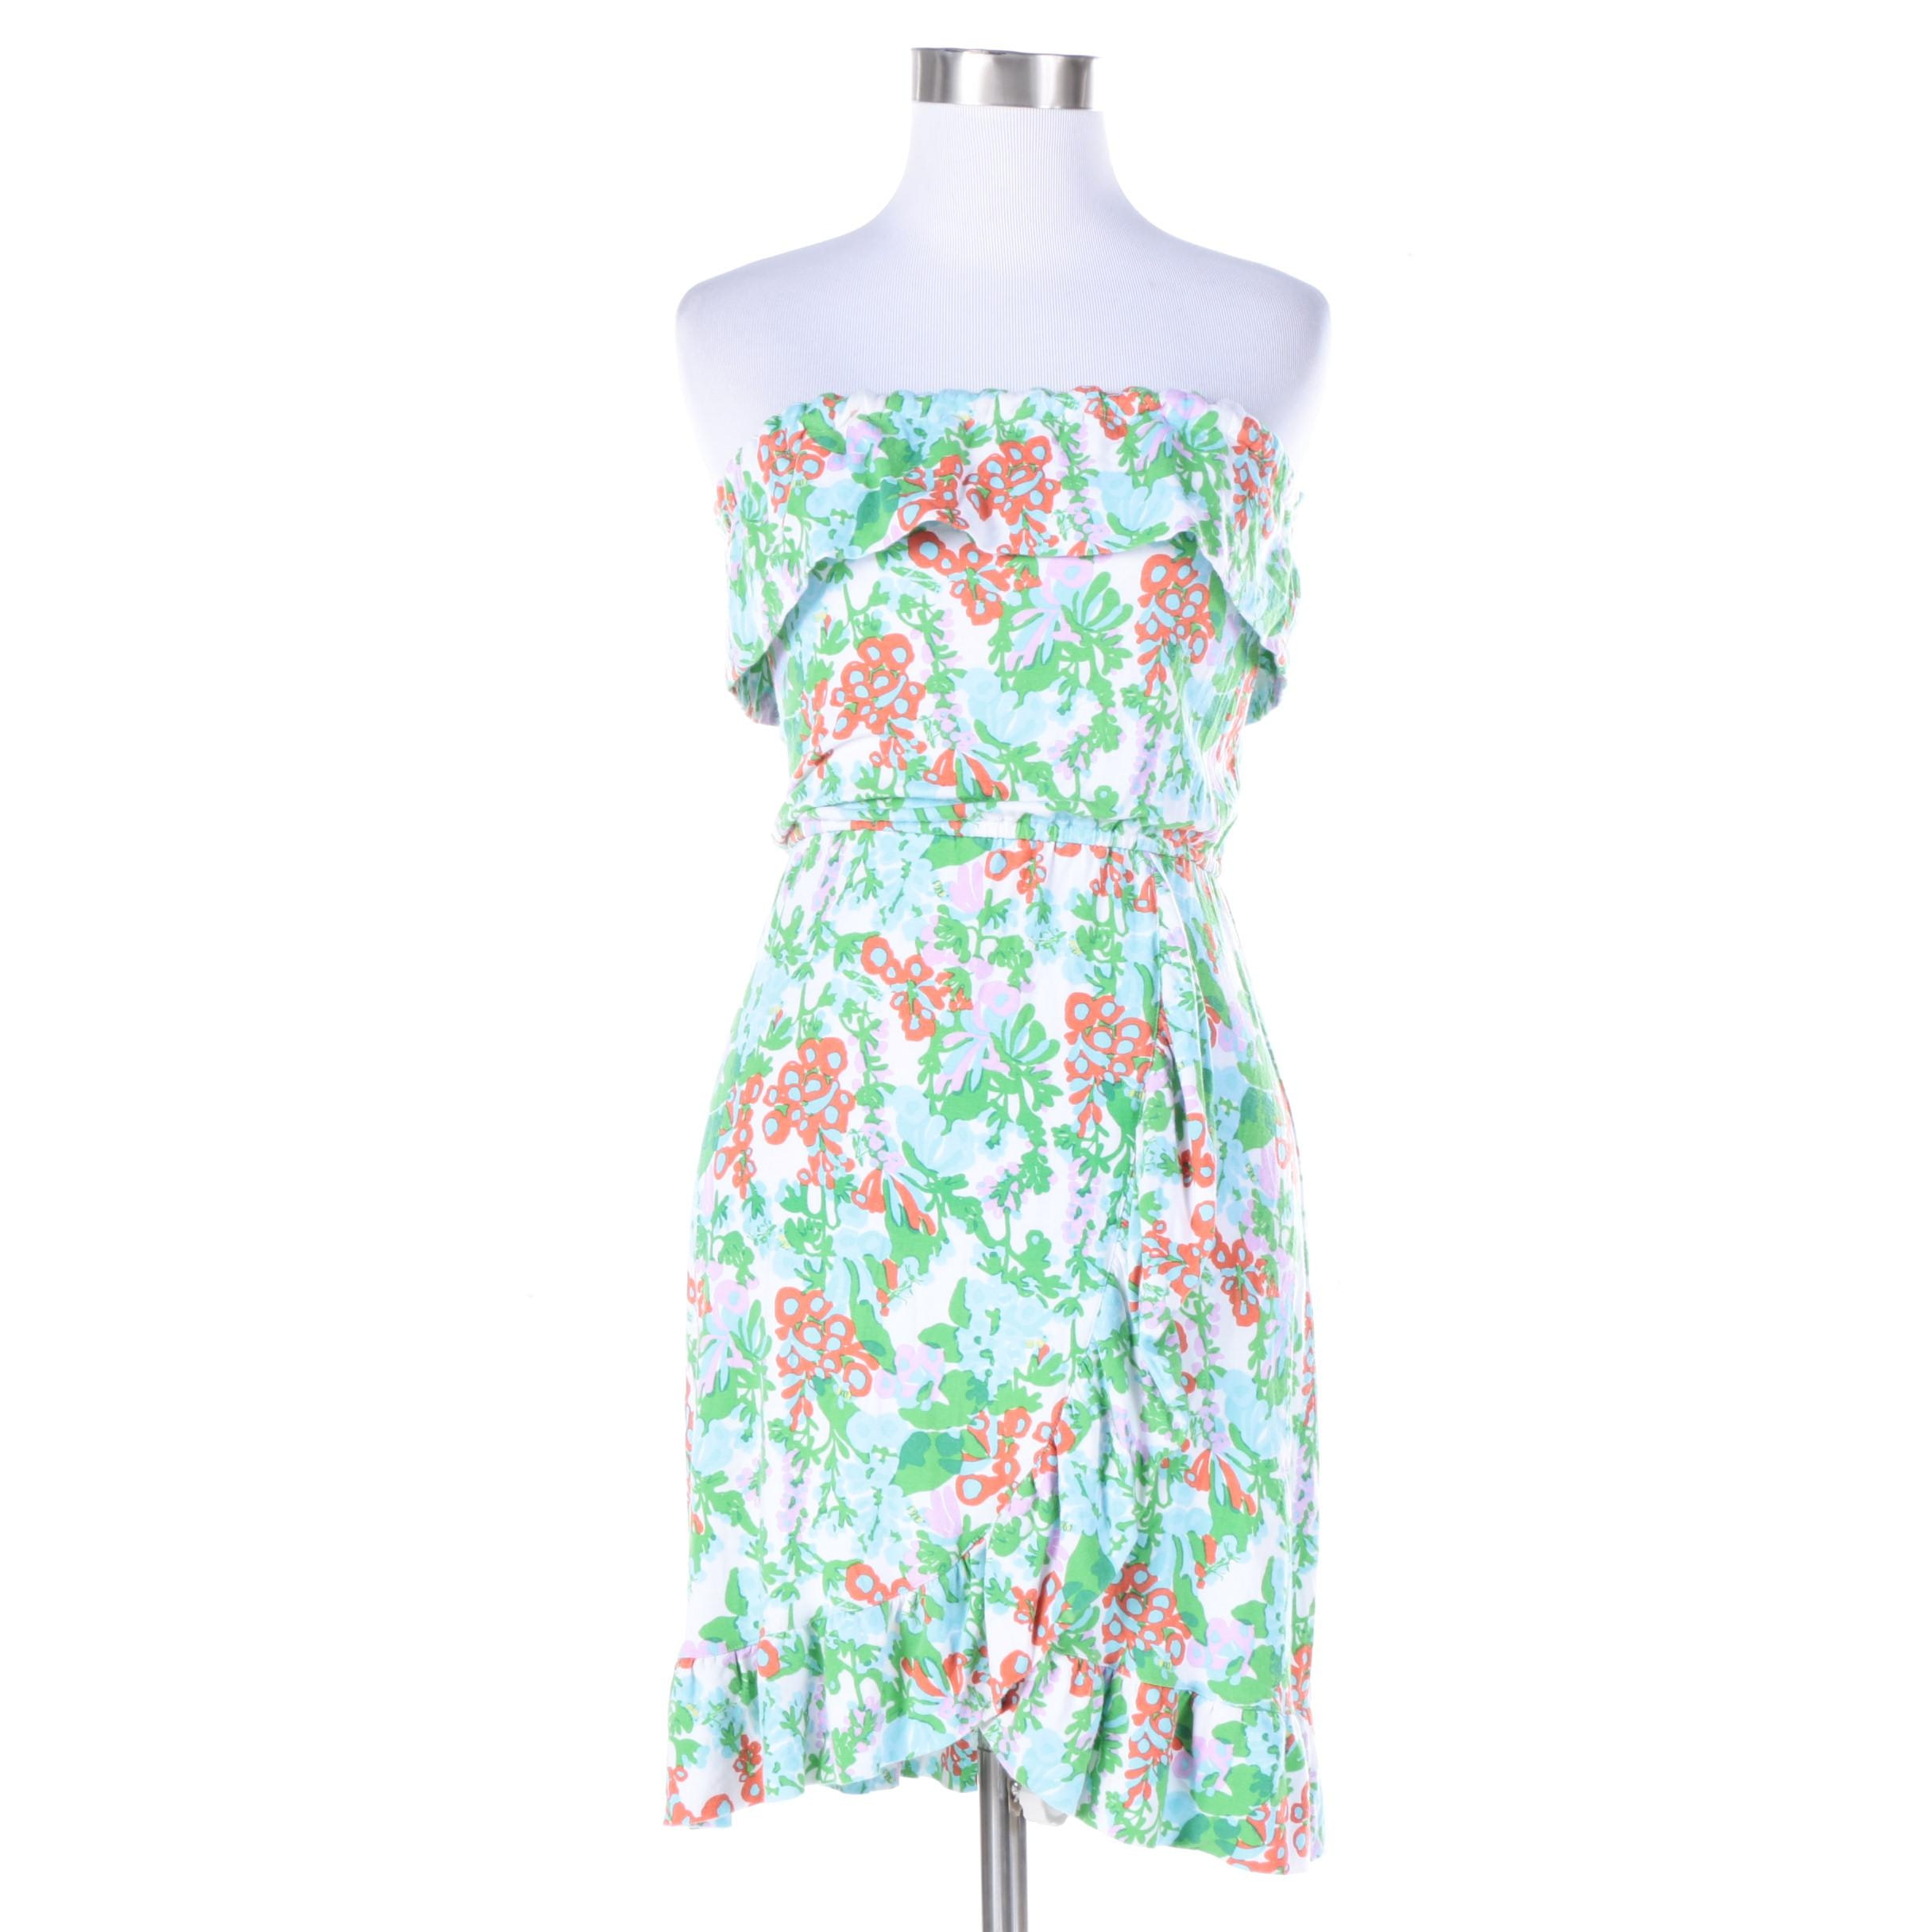 Lilly Pulitzer Floral Print Strapless Dress